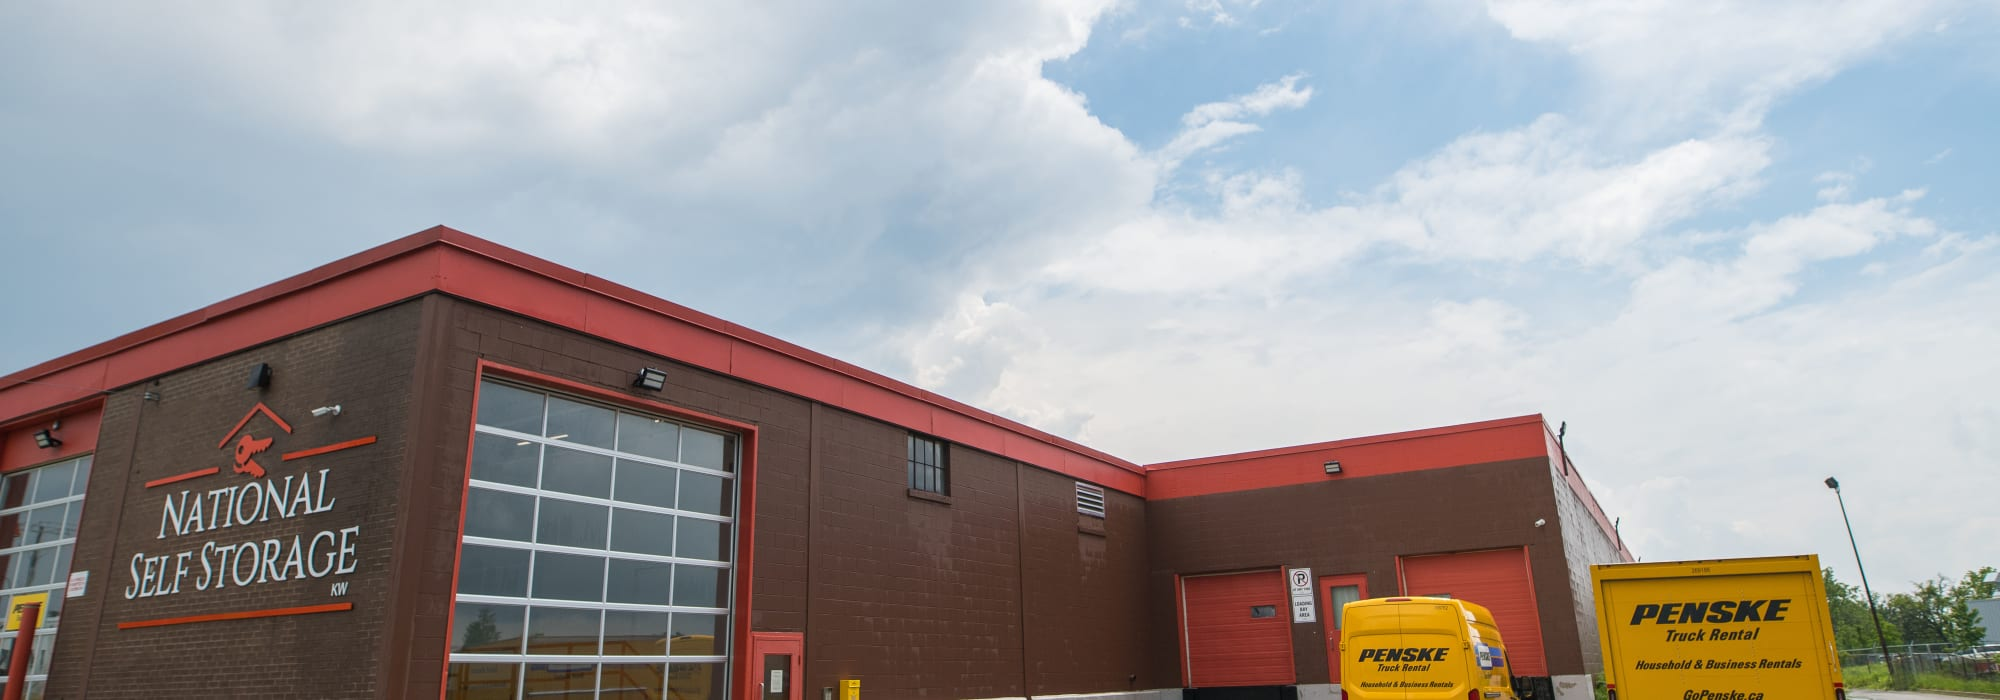 The exterior of National Self Storage in Kitchener, Ontario